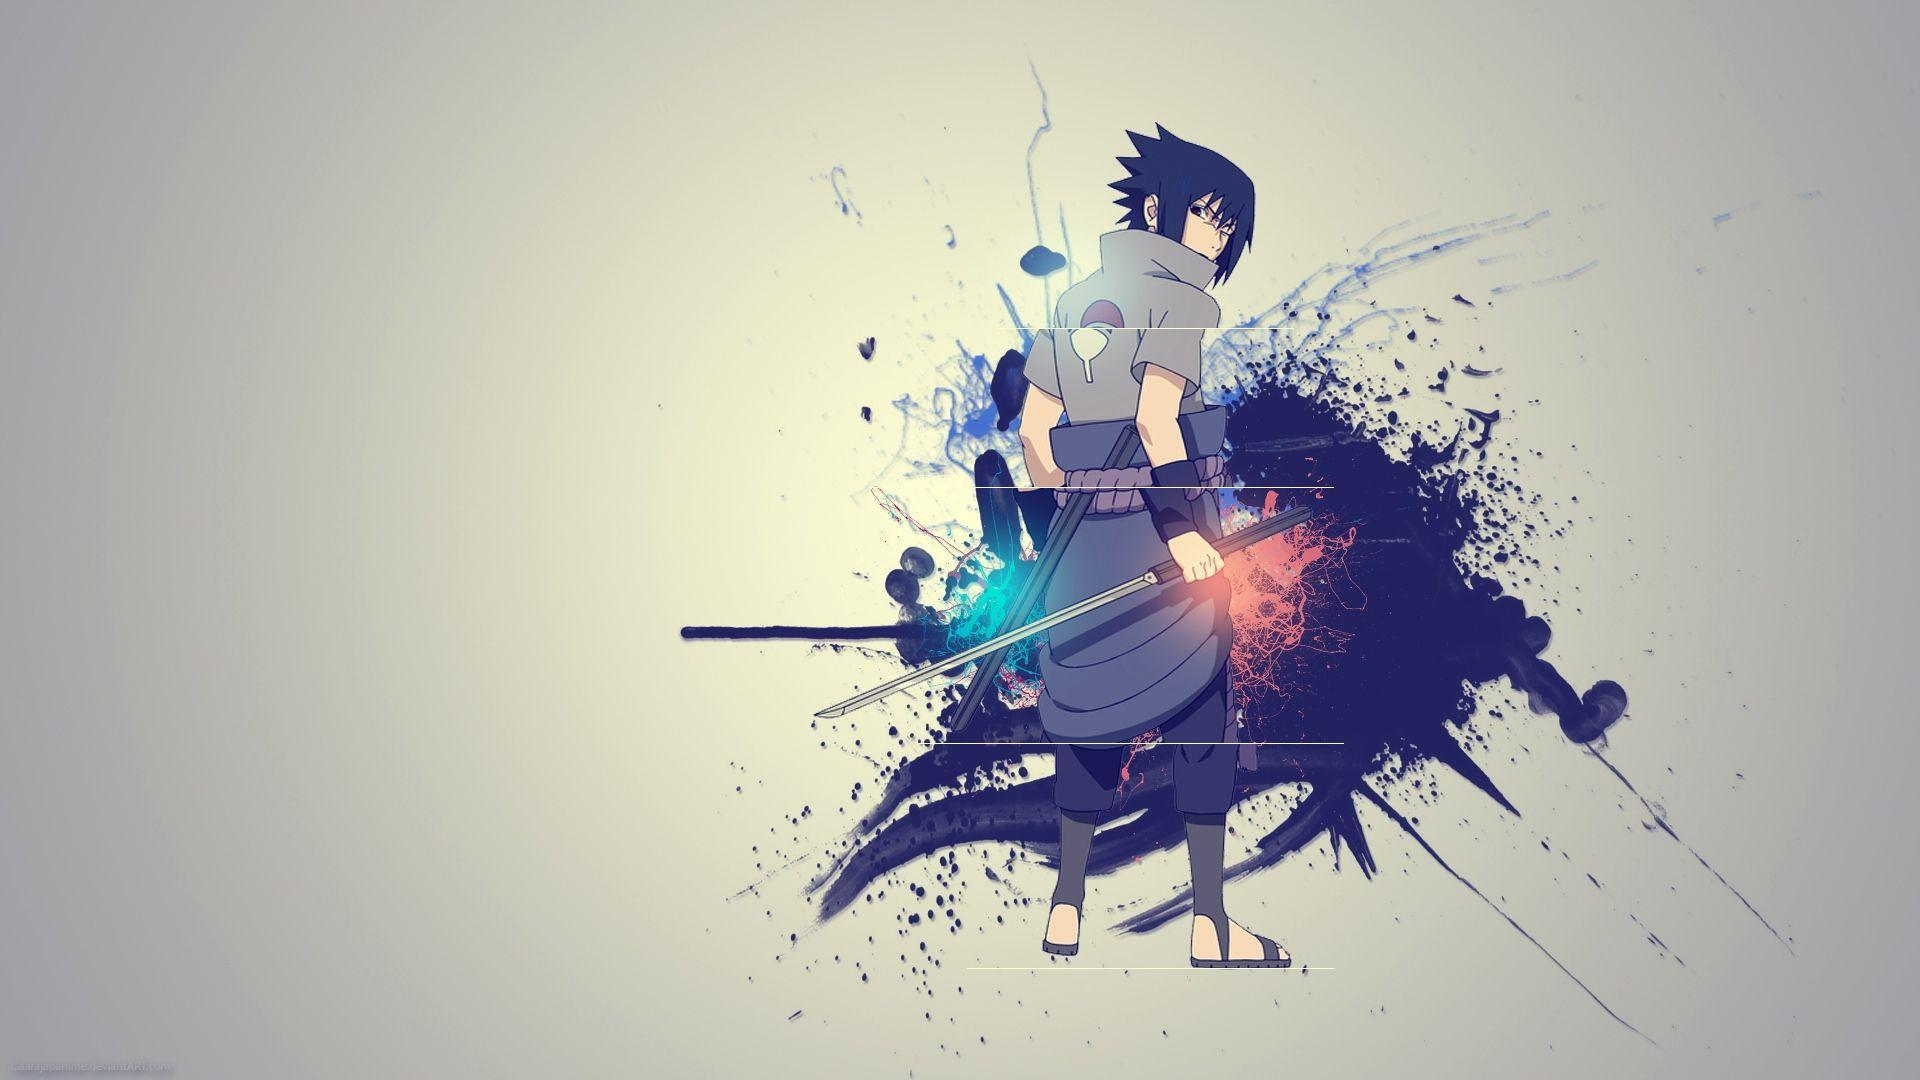 Naruto 1920x1080 Wallpaper on Family Quotes